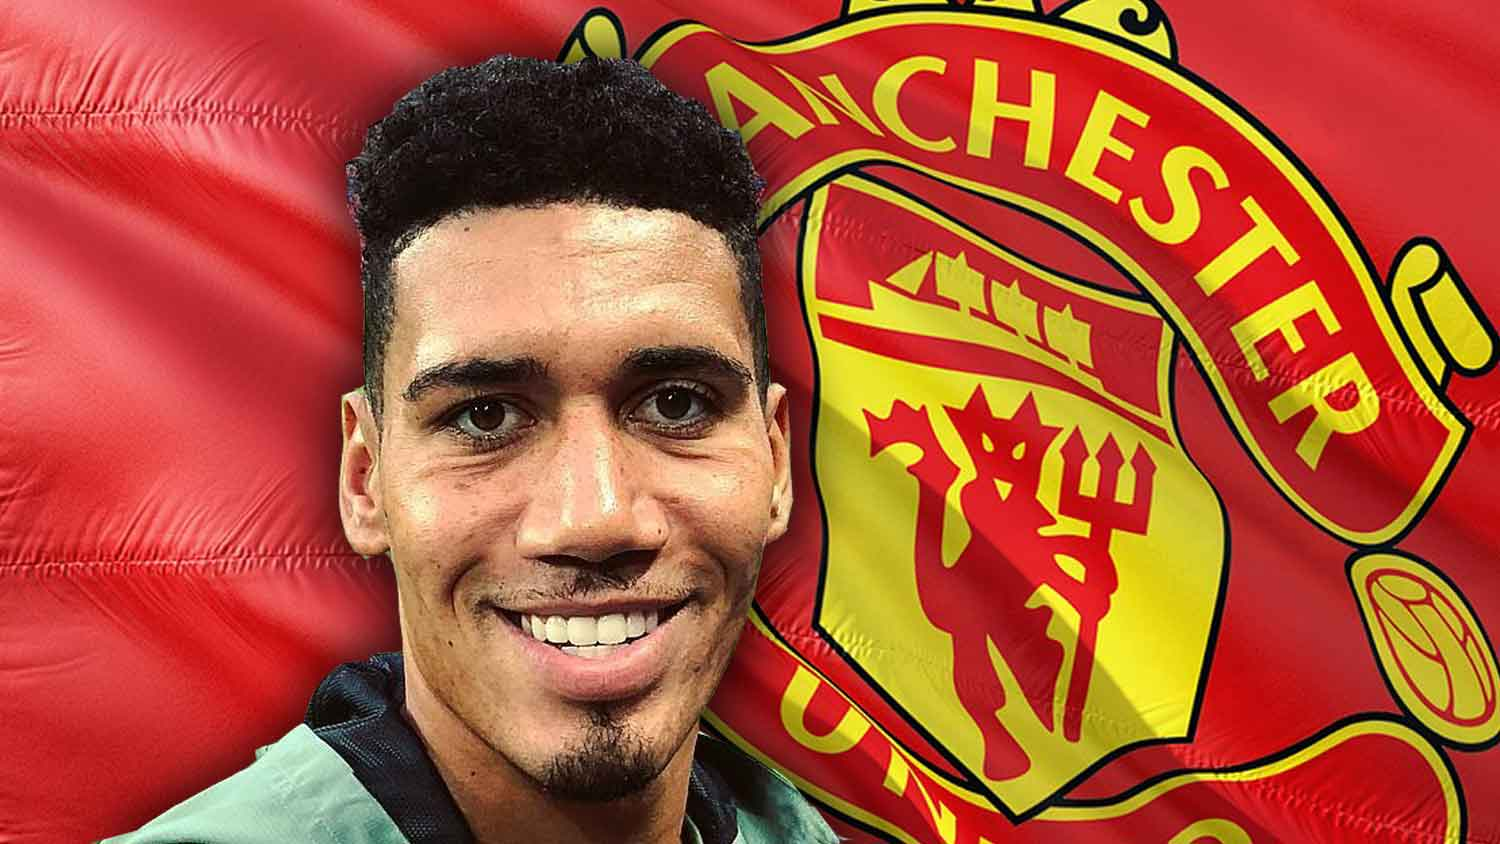 Manchester United Eating Vegan Thanks to Chris Smalling